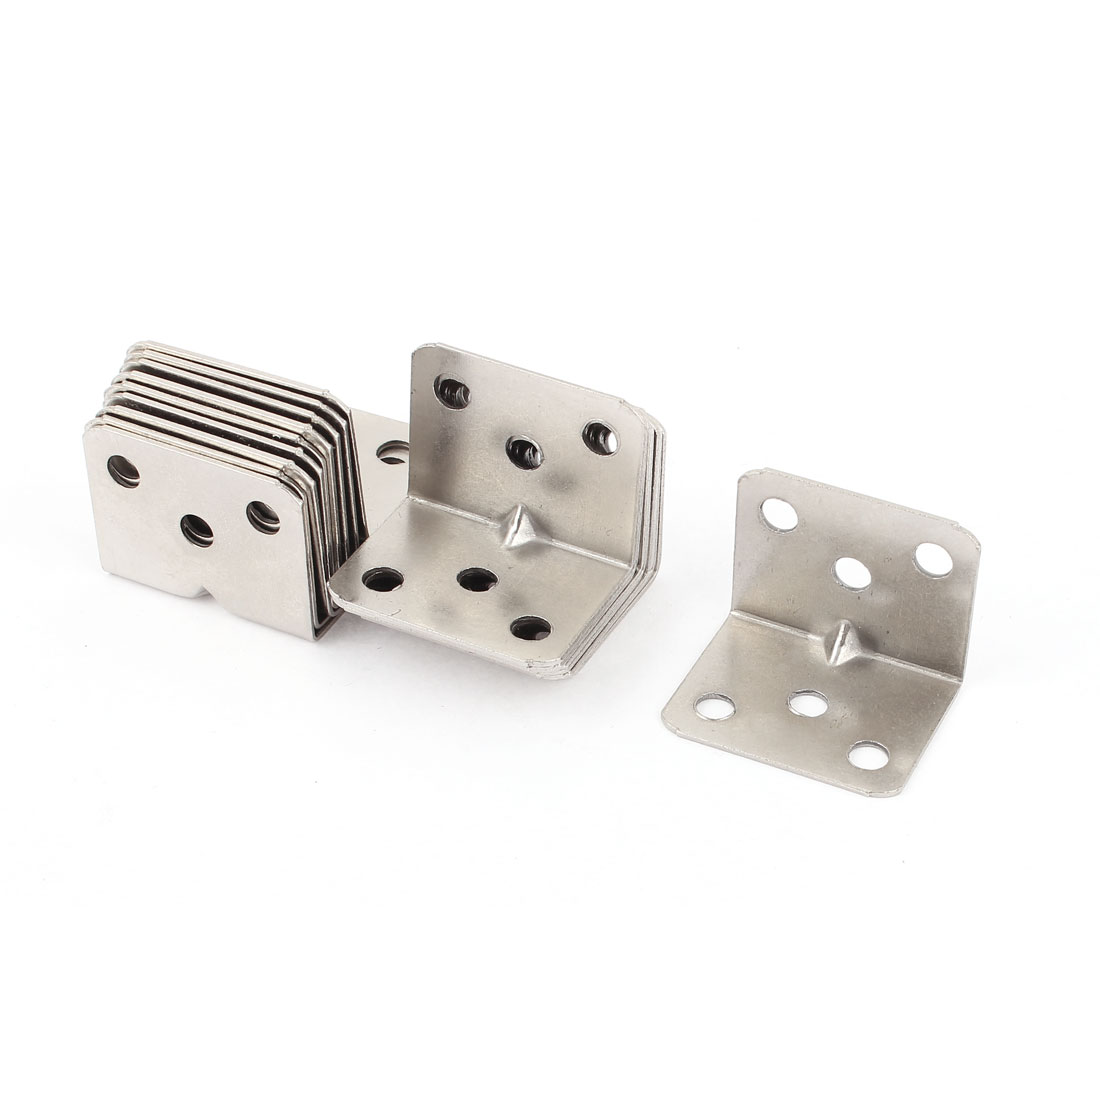 Shelf Support Brace 36x27x27mm 6 Holes Metal Angle Brackets 20pcs